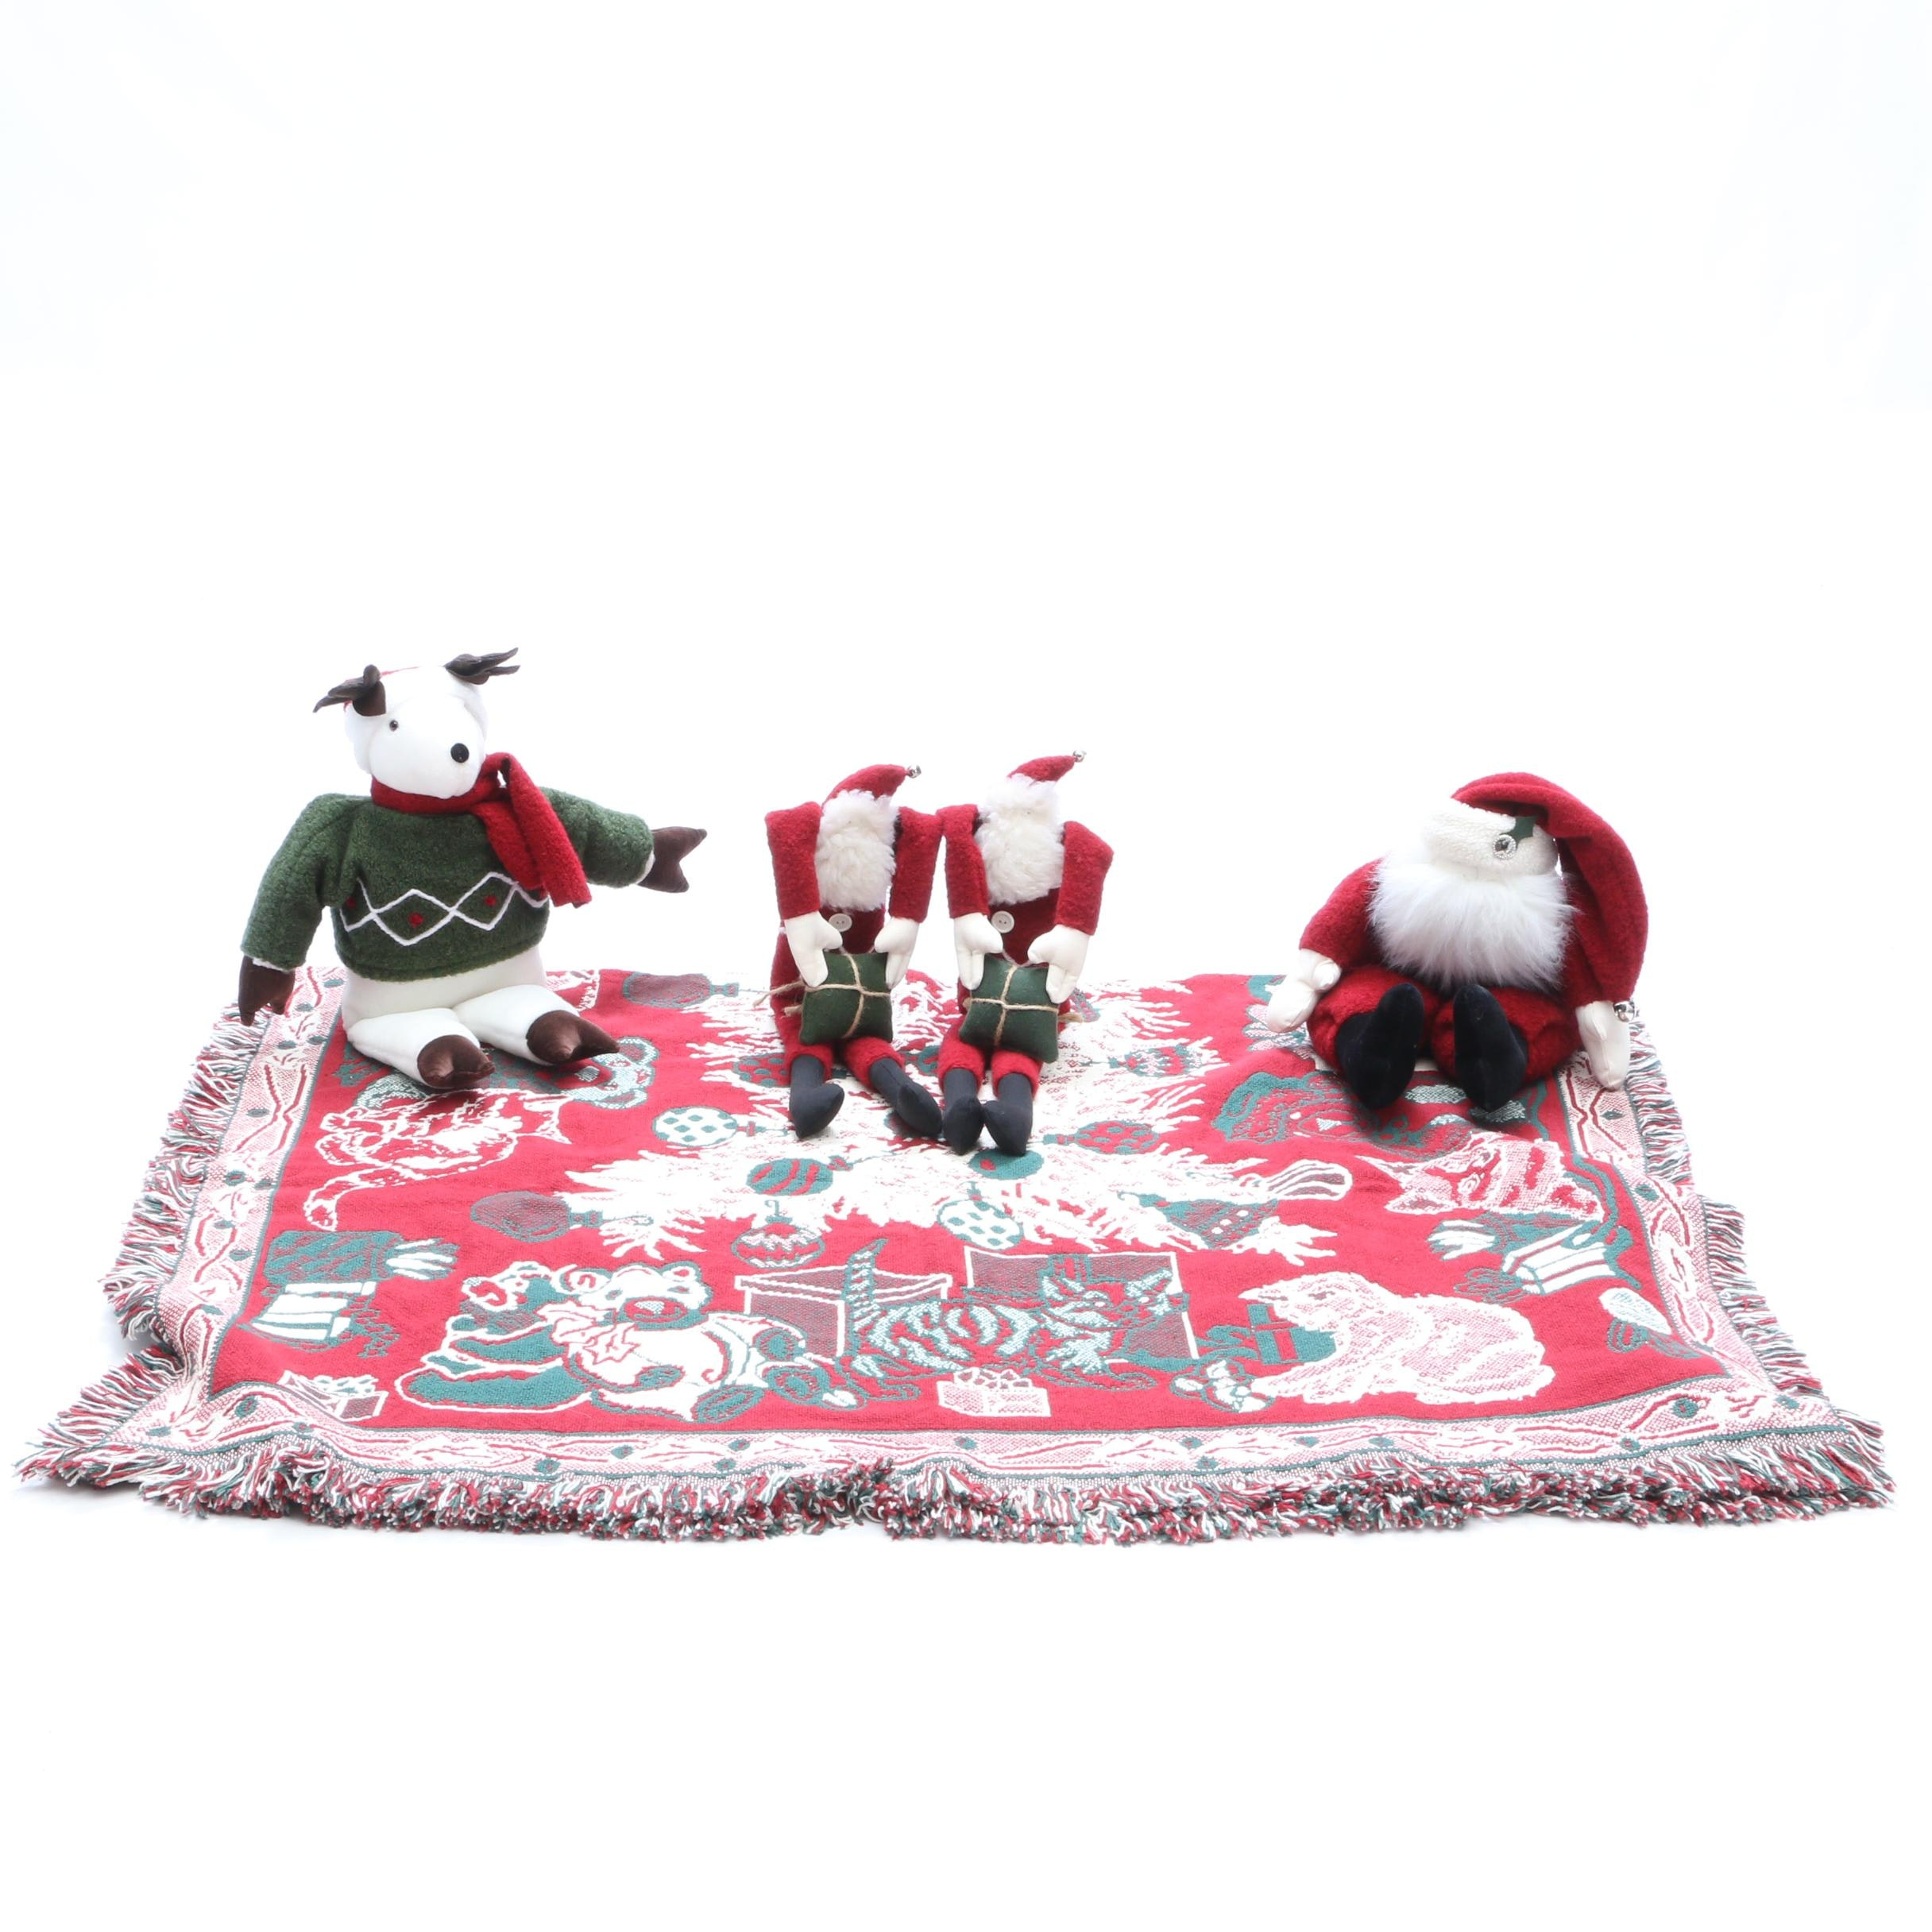 Woof & Poof Christmas and Music Box Decorations with Throw Blanket